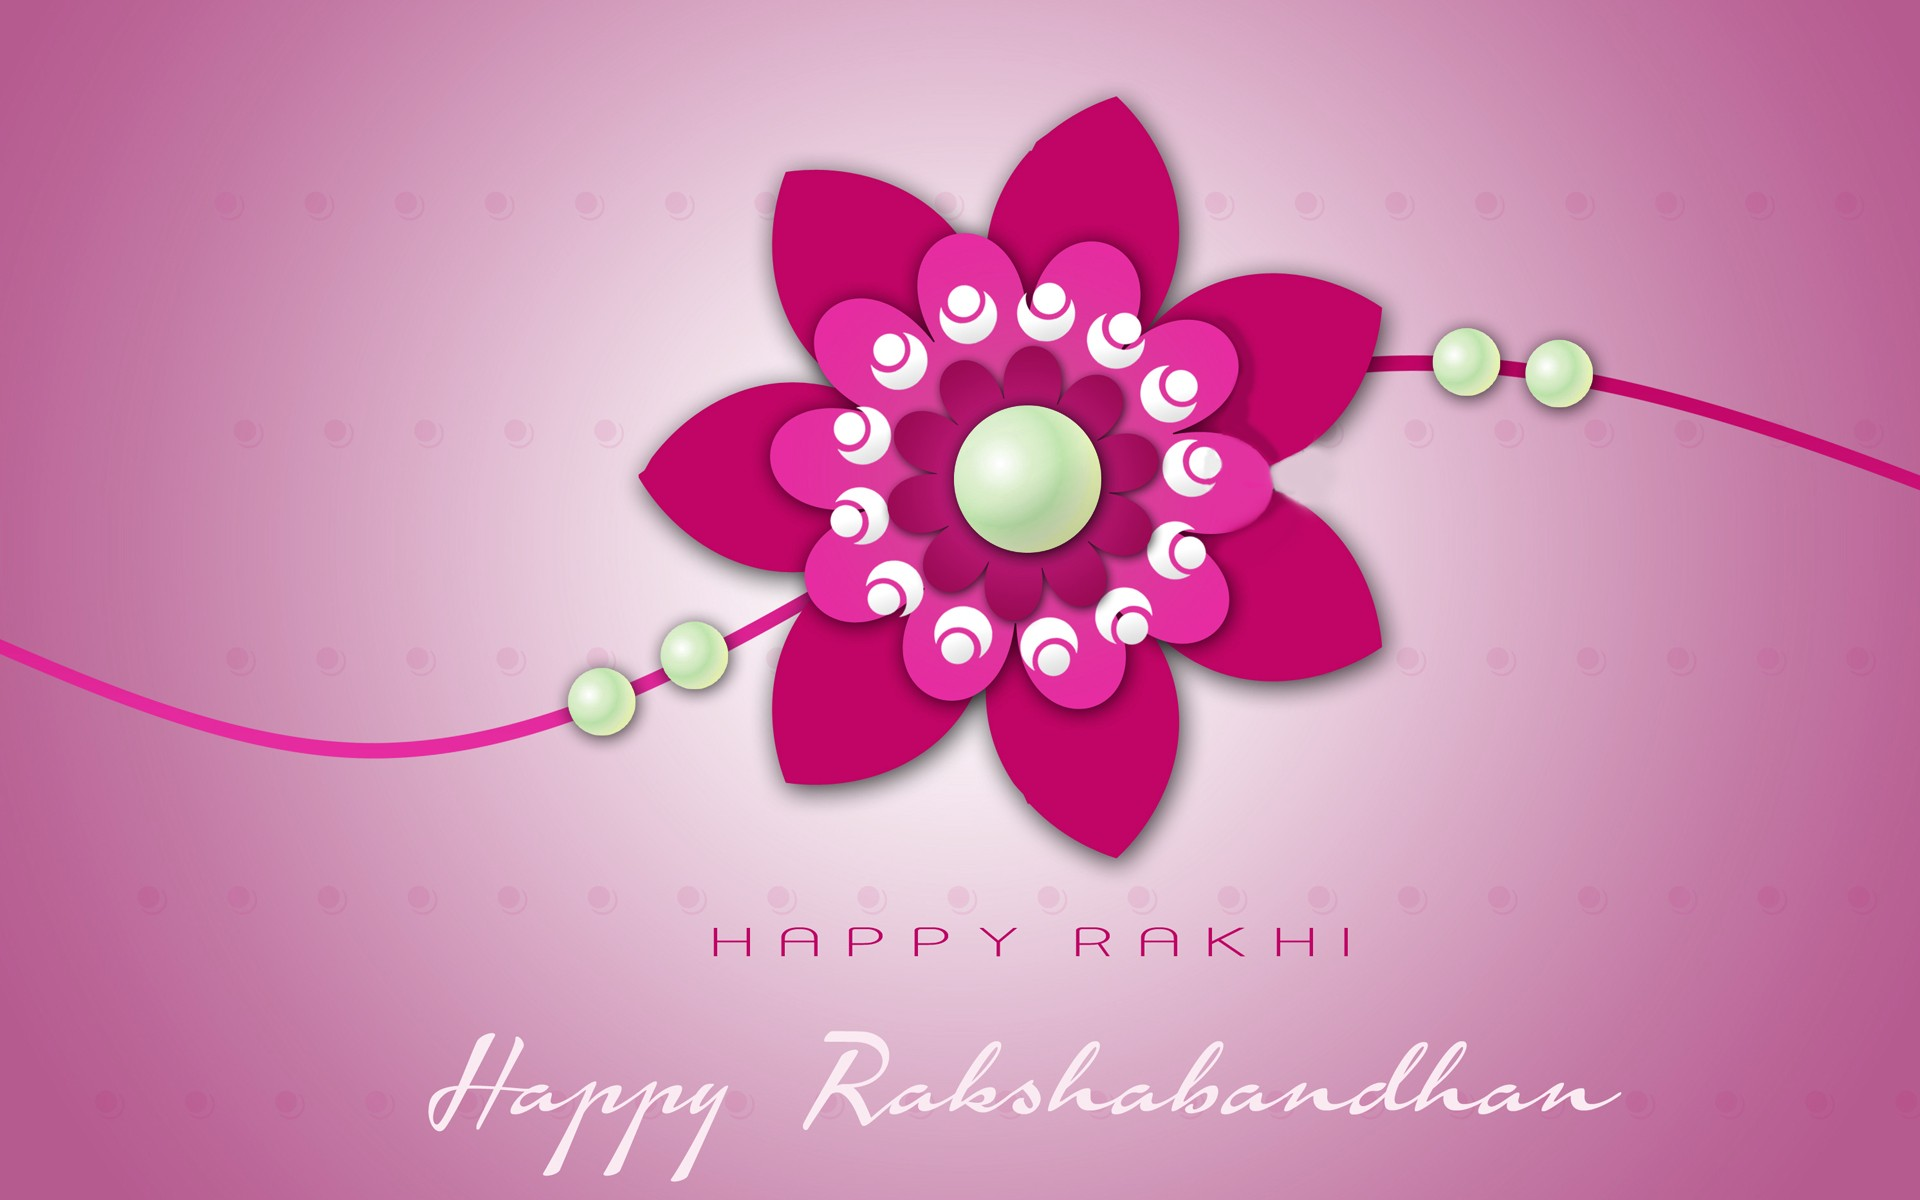 raksha bandhan wishes greetings free download hd desktop background pics